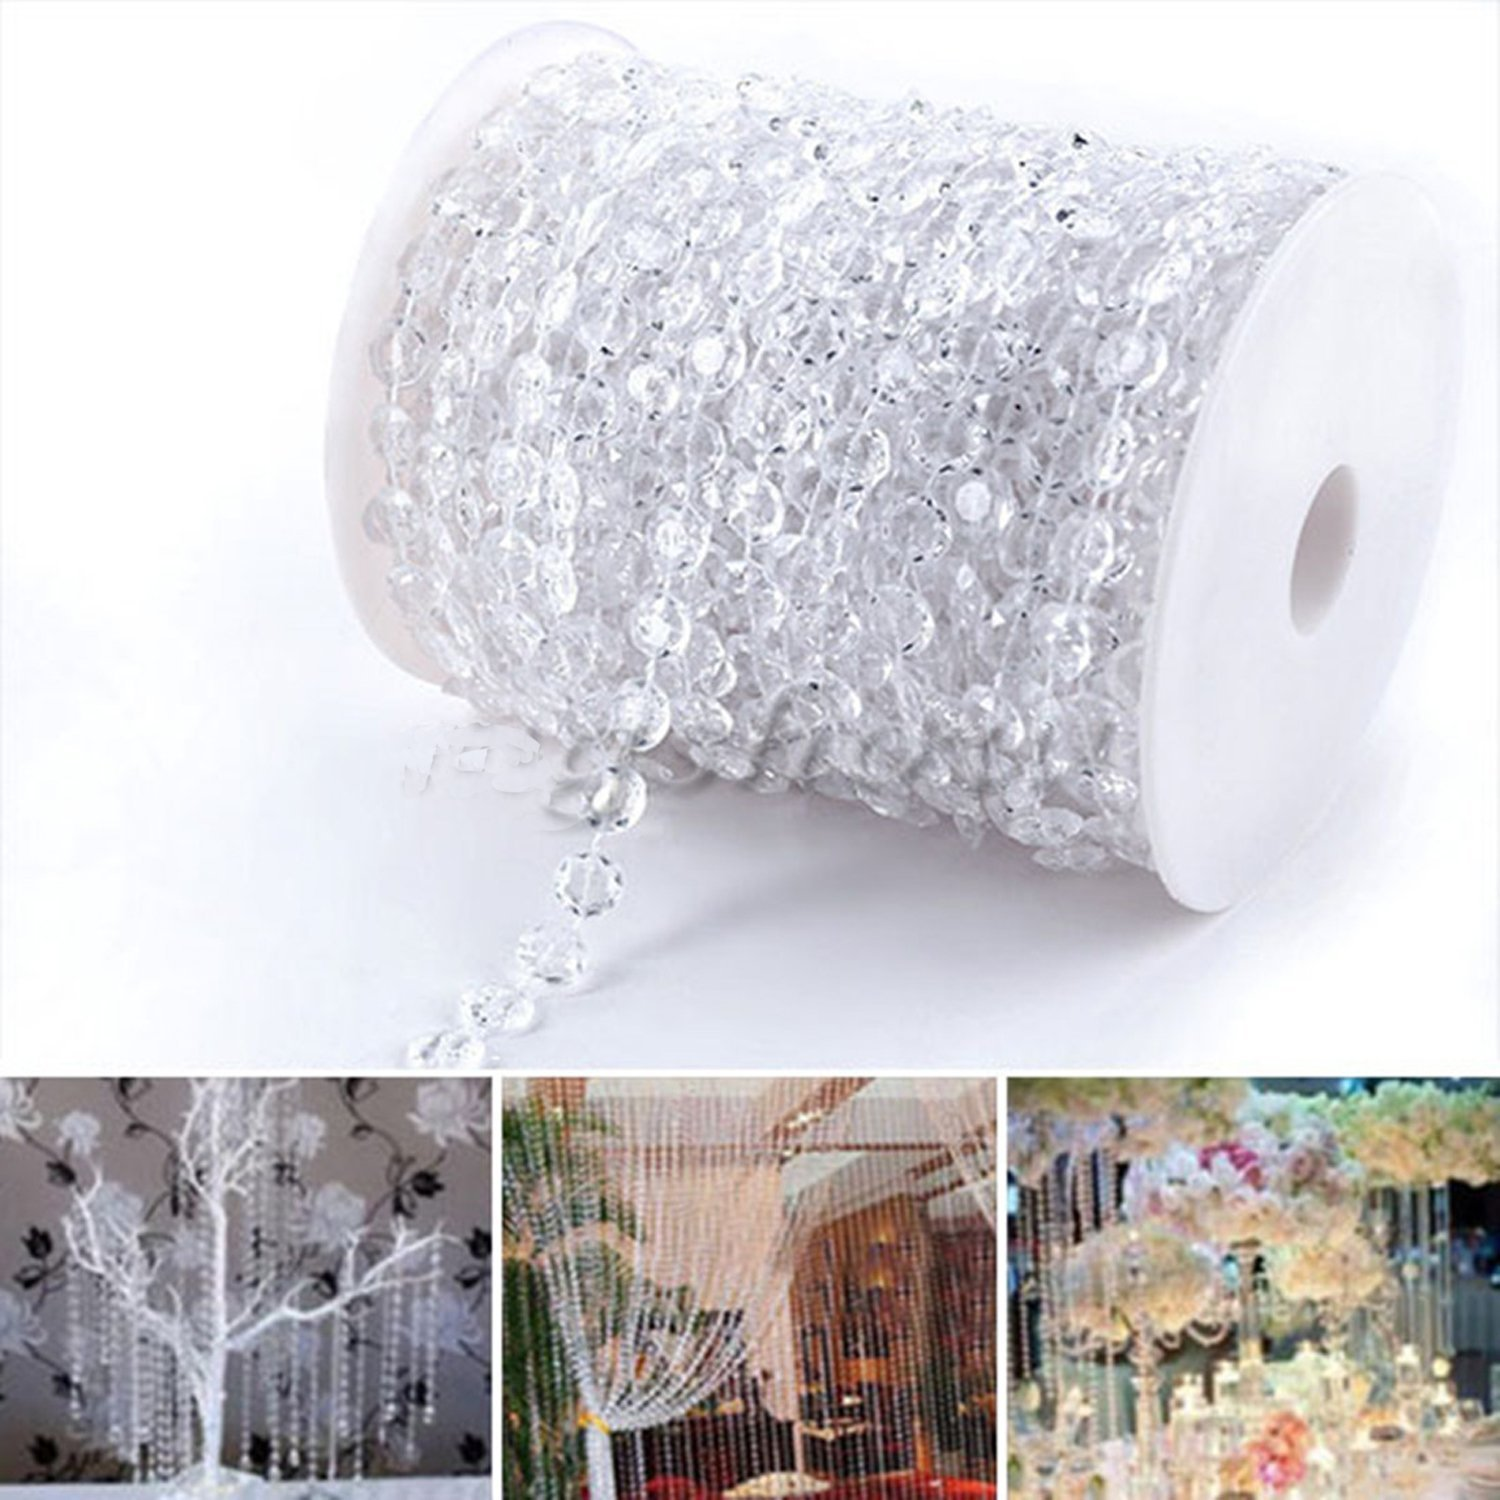 Estink Acrylic Crystal Beads Curtain Garland Diamond Strand DIY Wedding Decorations (30Meters)-99FT 1 Roll